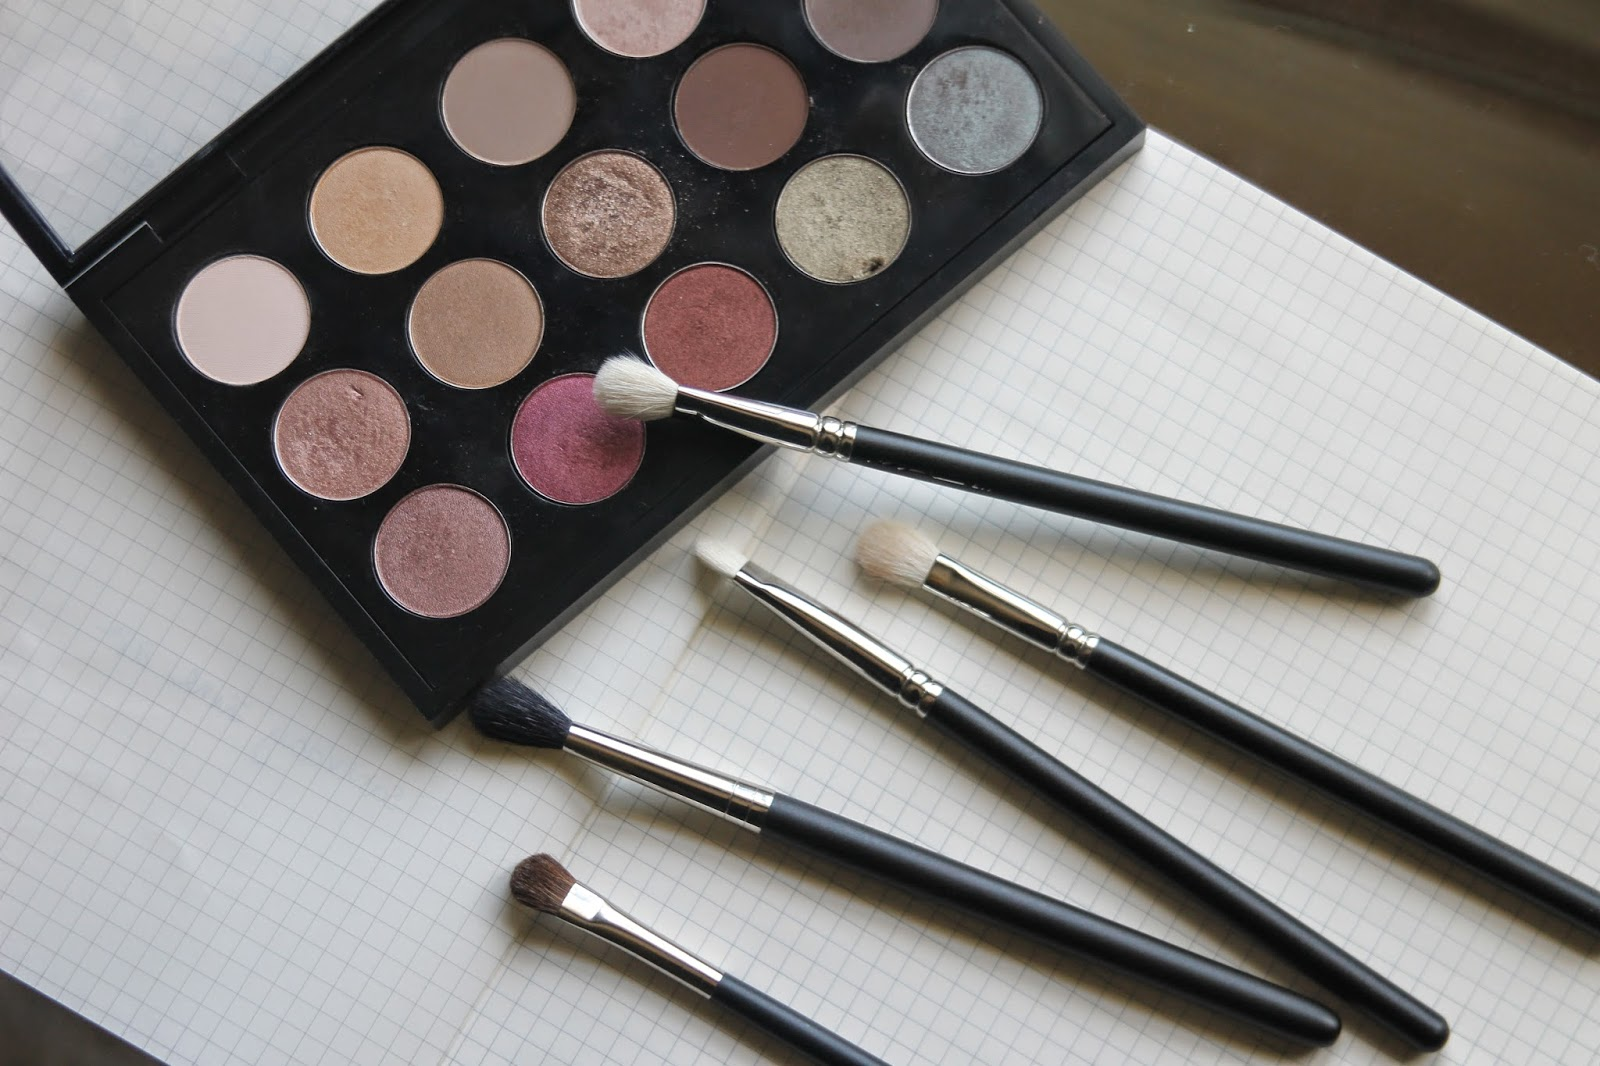 THE MAC EYE-BRUSH KIT